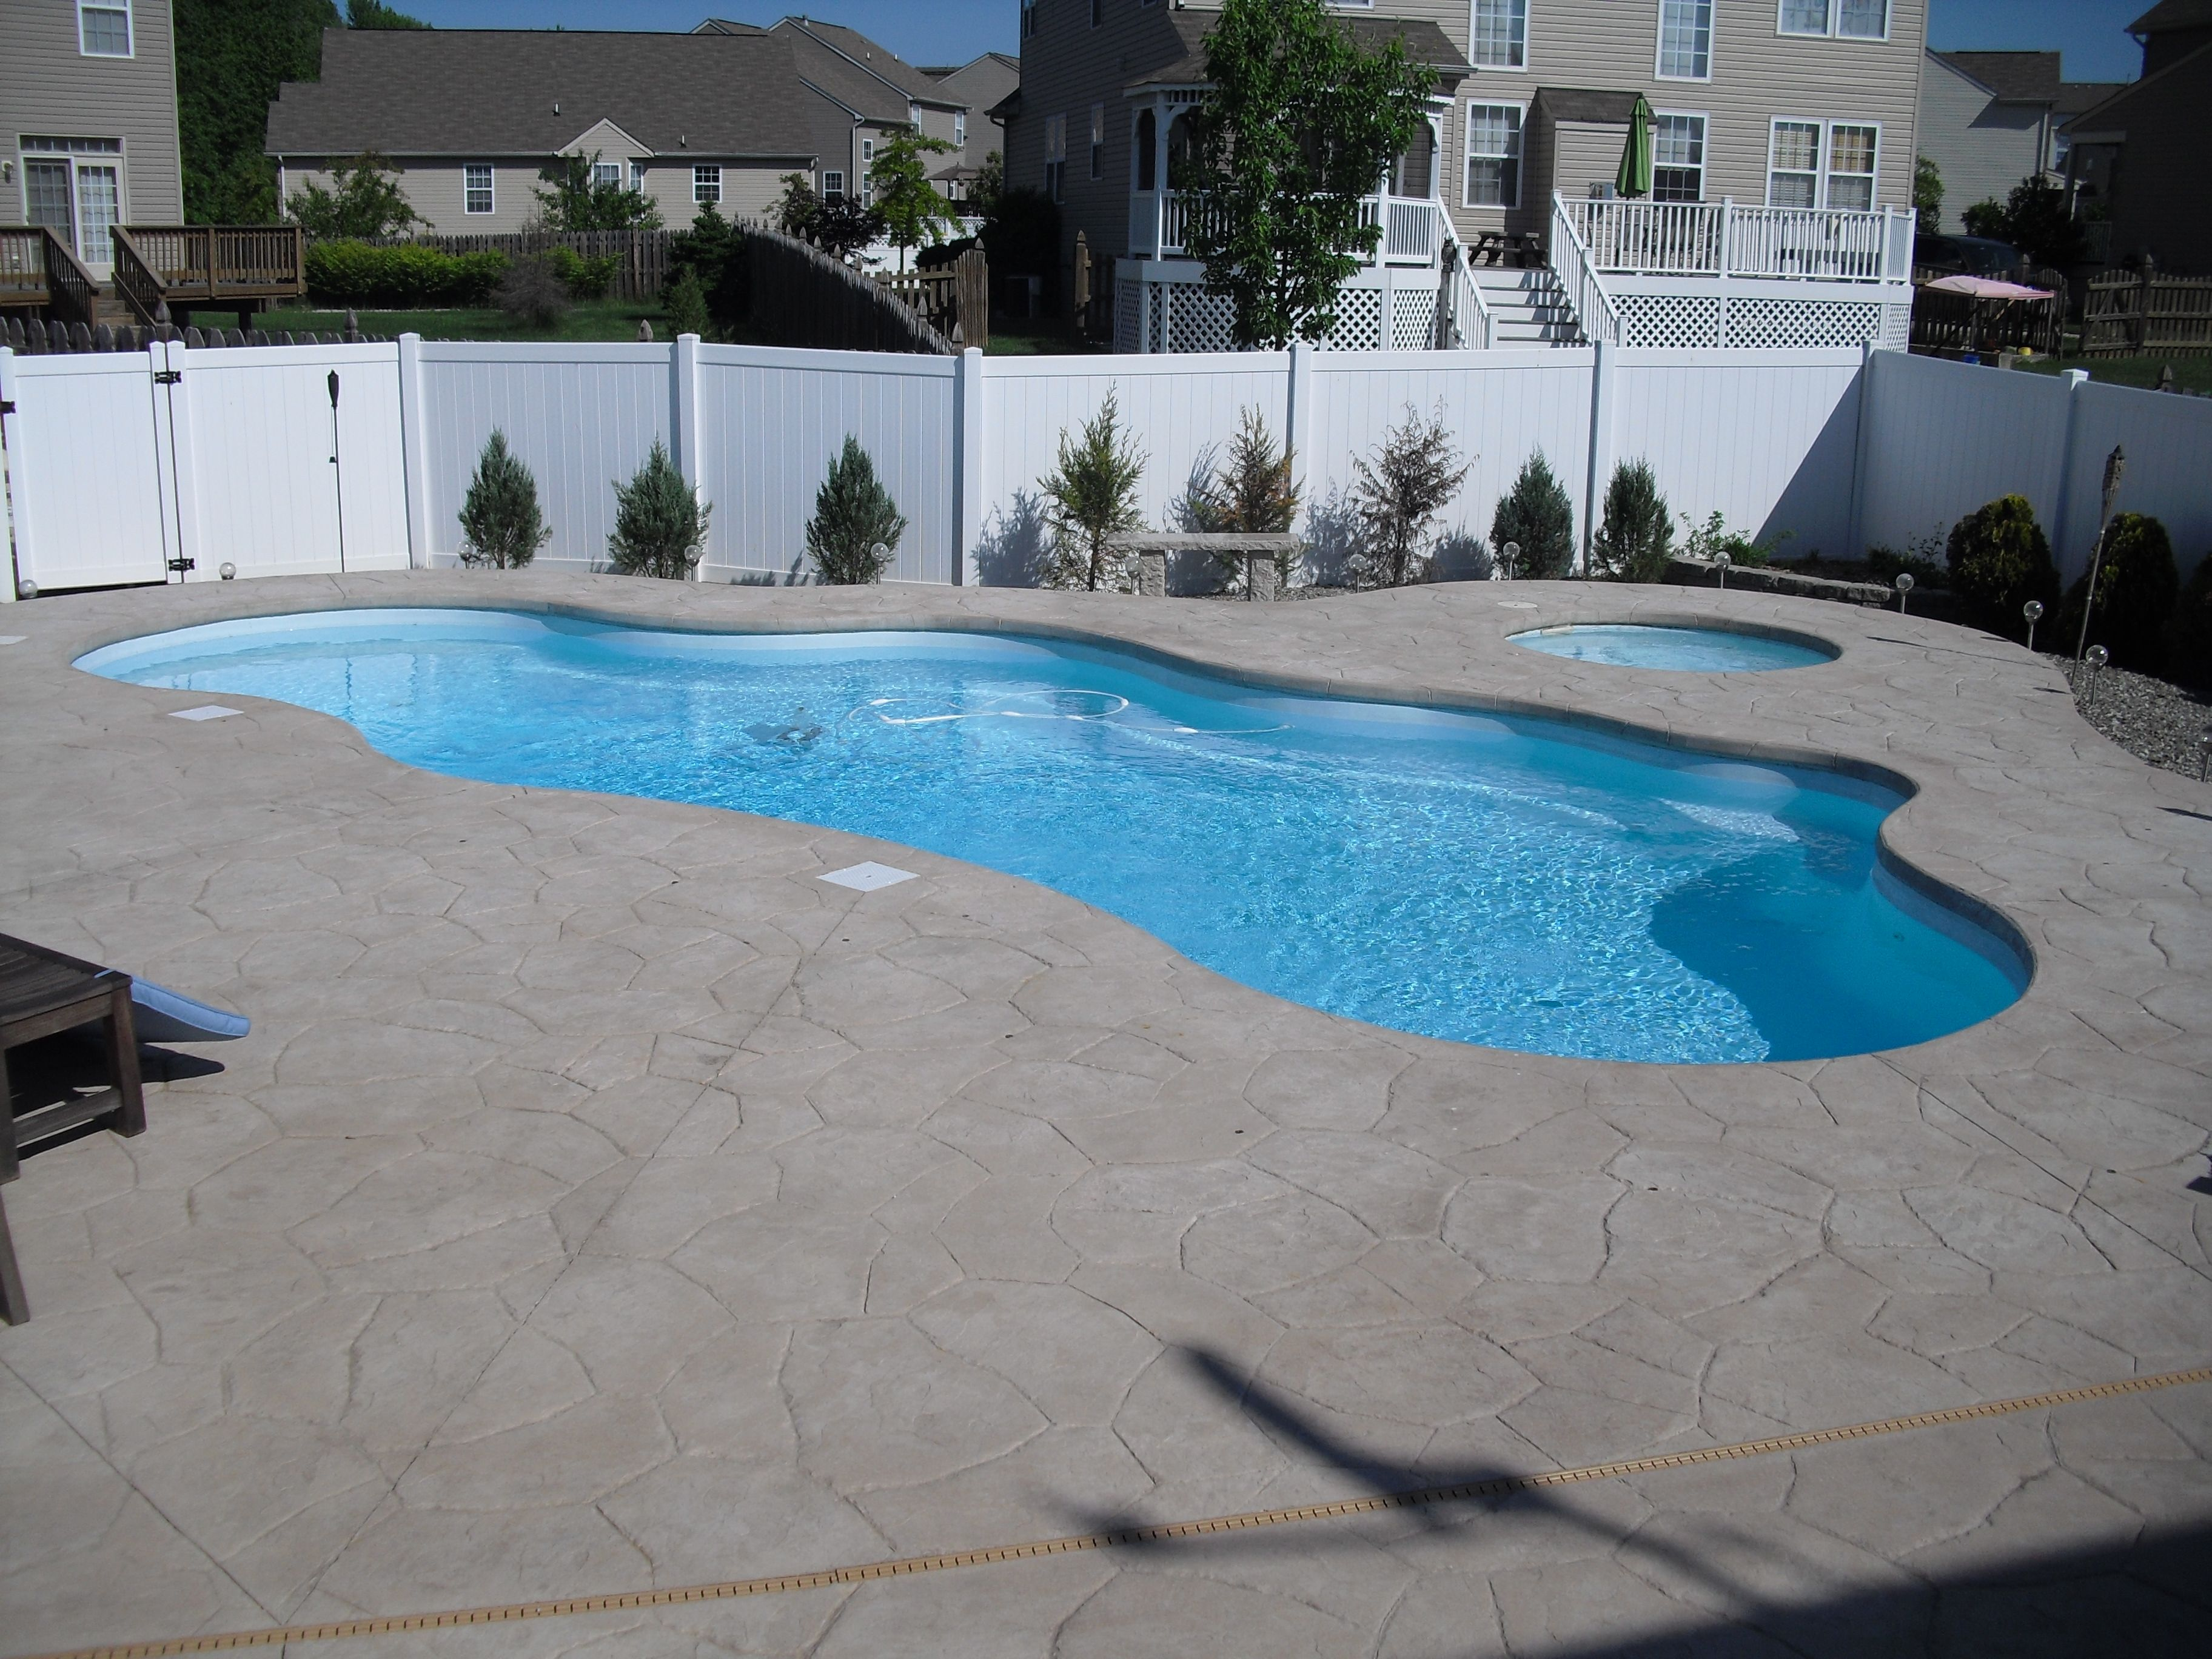 Fiberglass Pool and spa with cantilever deck and stamp Concrete